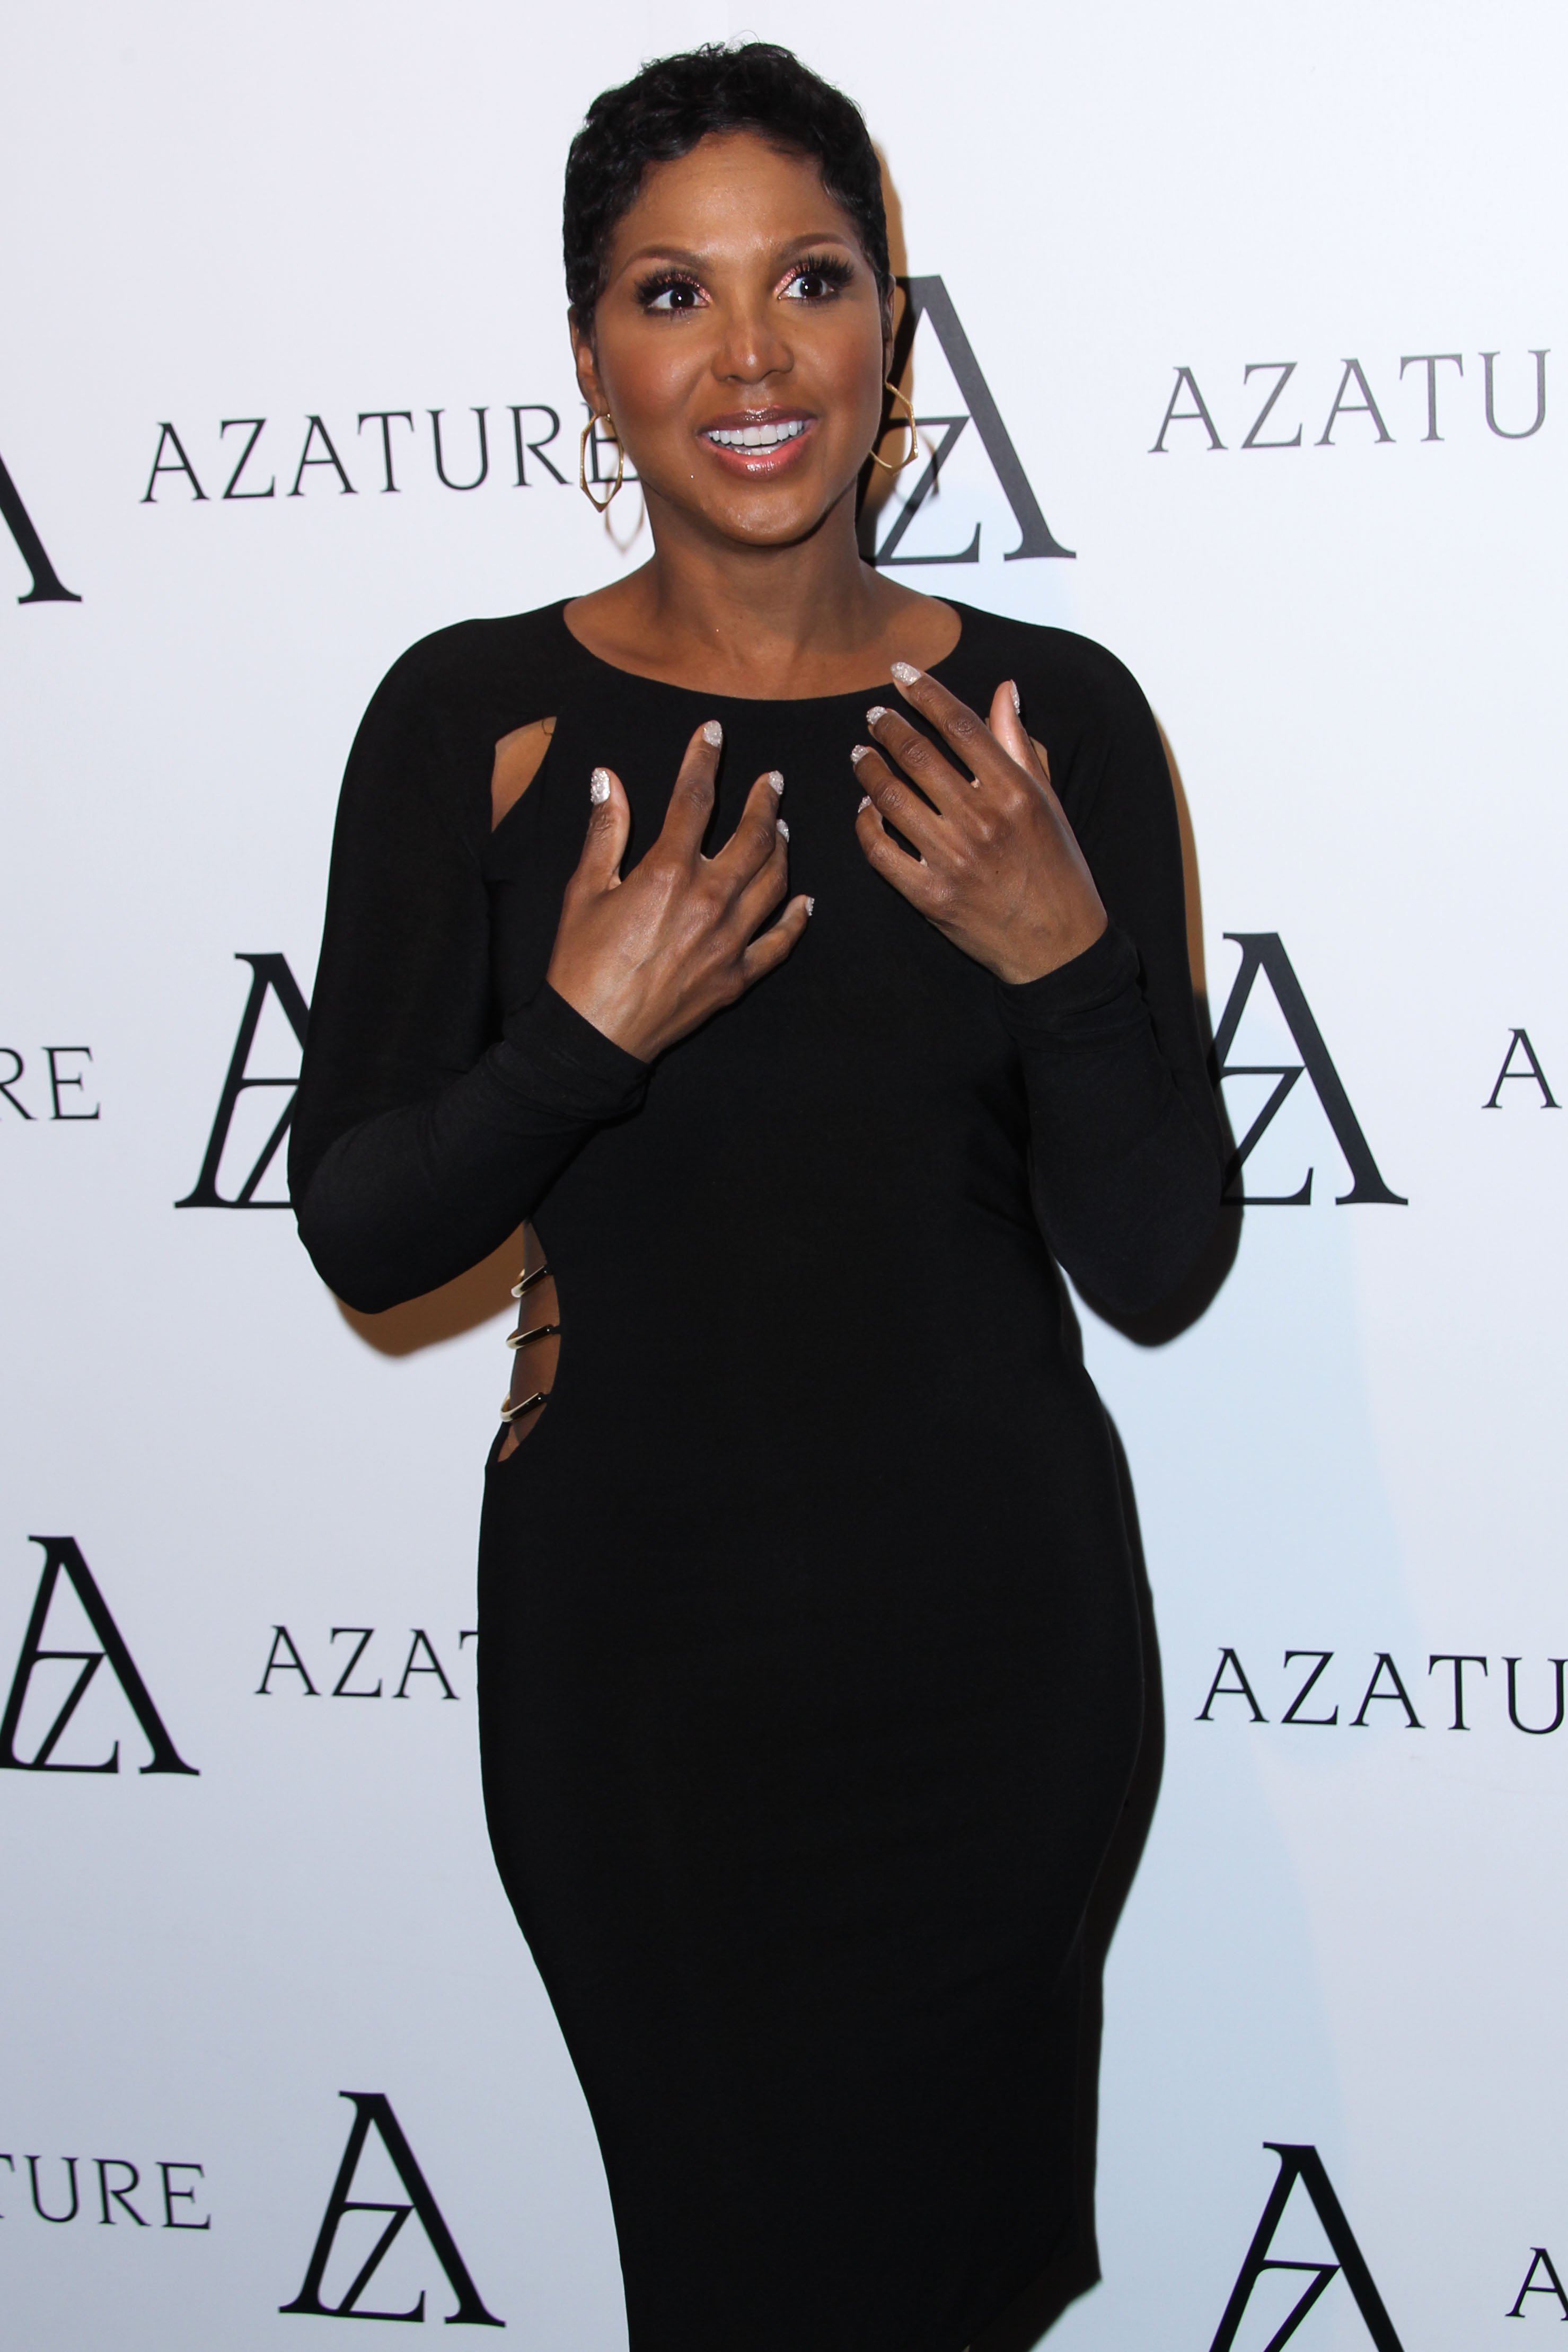 WEST HOLLYWOOD, CA - OCTOBER 08: Singer-songwriter Toni Braxton arrives at The Black Diamond Affair held at Sunset Tower Hotel on October 8, 2013 in West Hollywood, California. <P> Pictured: Toni Braxton <P><B>Ref: SPL627396  081013  </B><BR/> Picture by: Xavier Collin/Celebrity Monitor/ Splash News<BR/> </P><P> <B>Splash News and Pictures</B><BR/> Los Angeles:310-821-2666<BR/> New York:212-619-2666<BR/> London:870-934-2666<BR/> <span id=